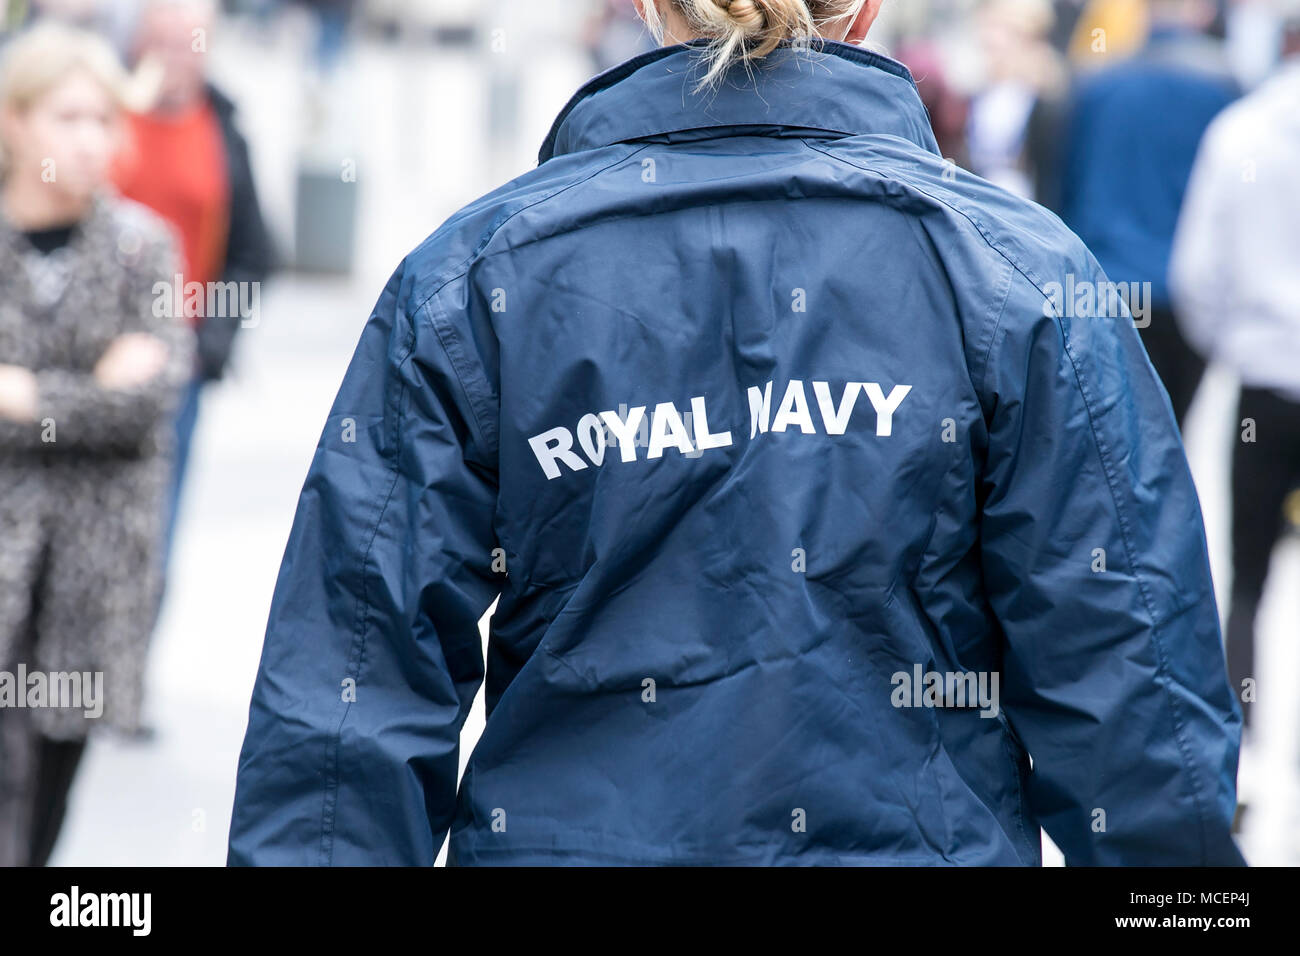 A female royal navy sailor wearing uniform with royal navy logo from rear view - Stock Image